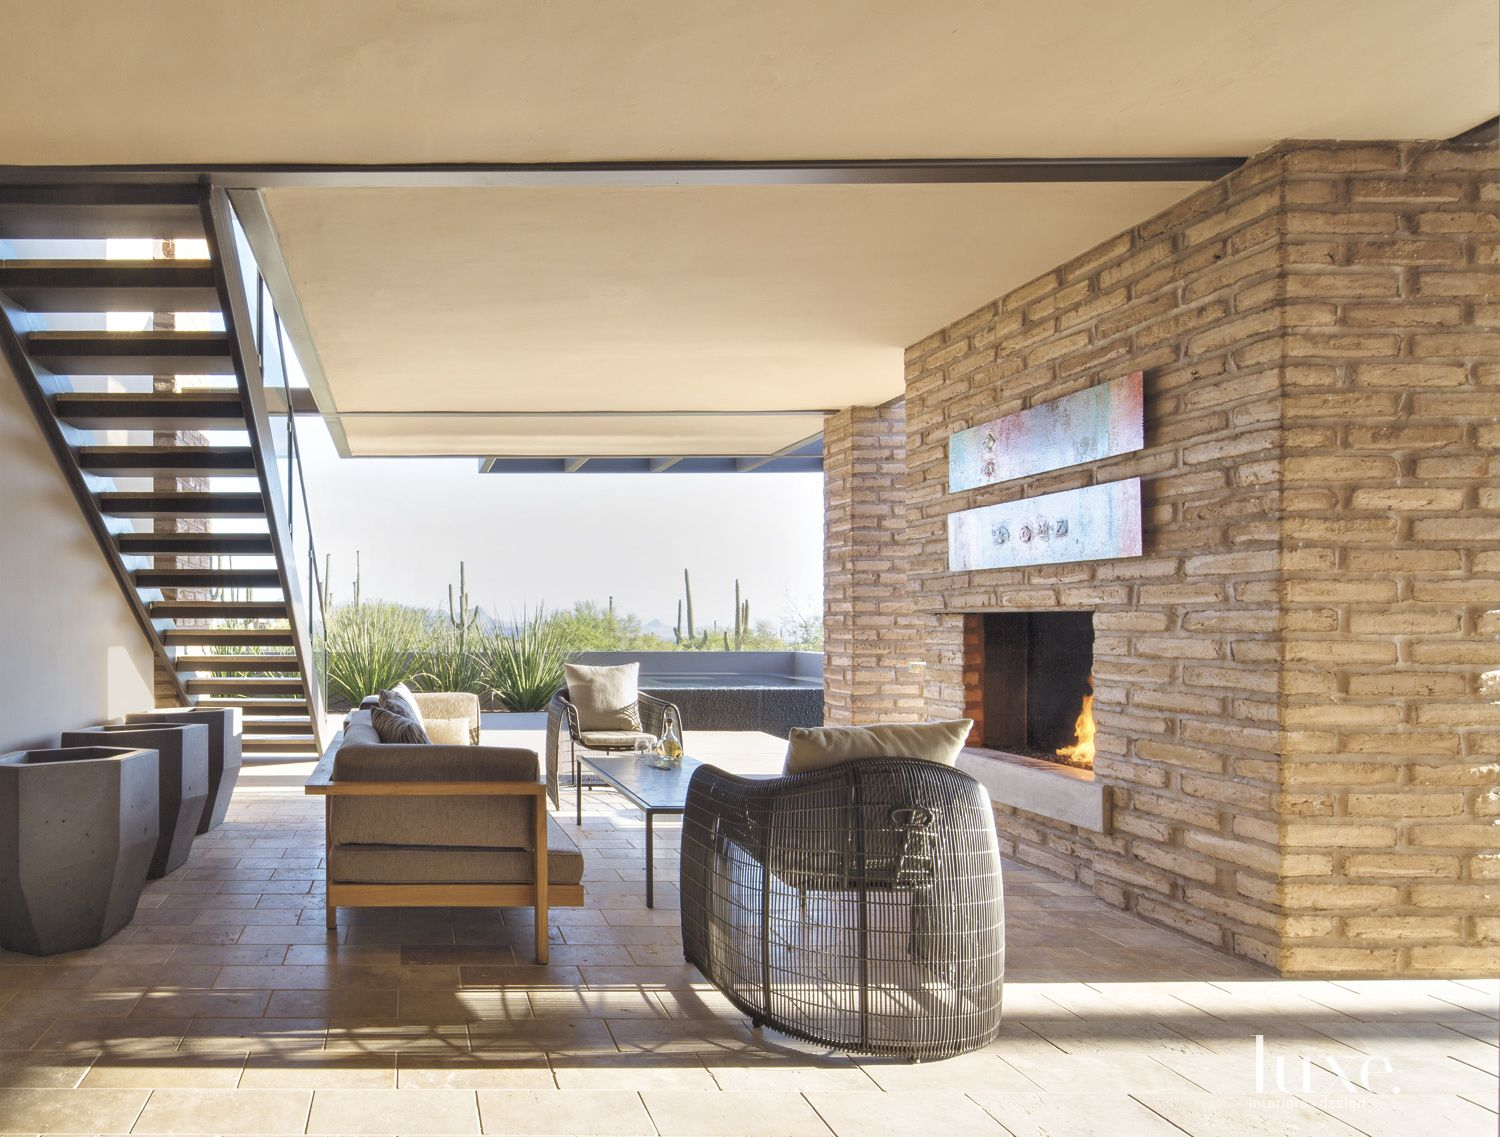 Contemporary Outdoor Living Room with Fireplace